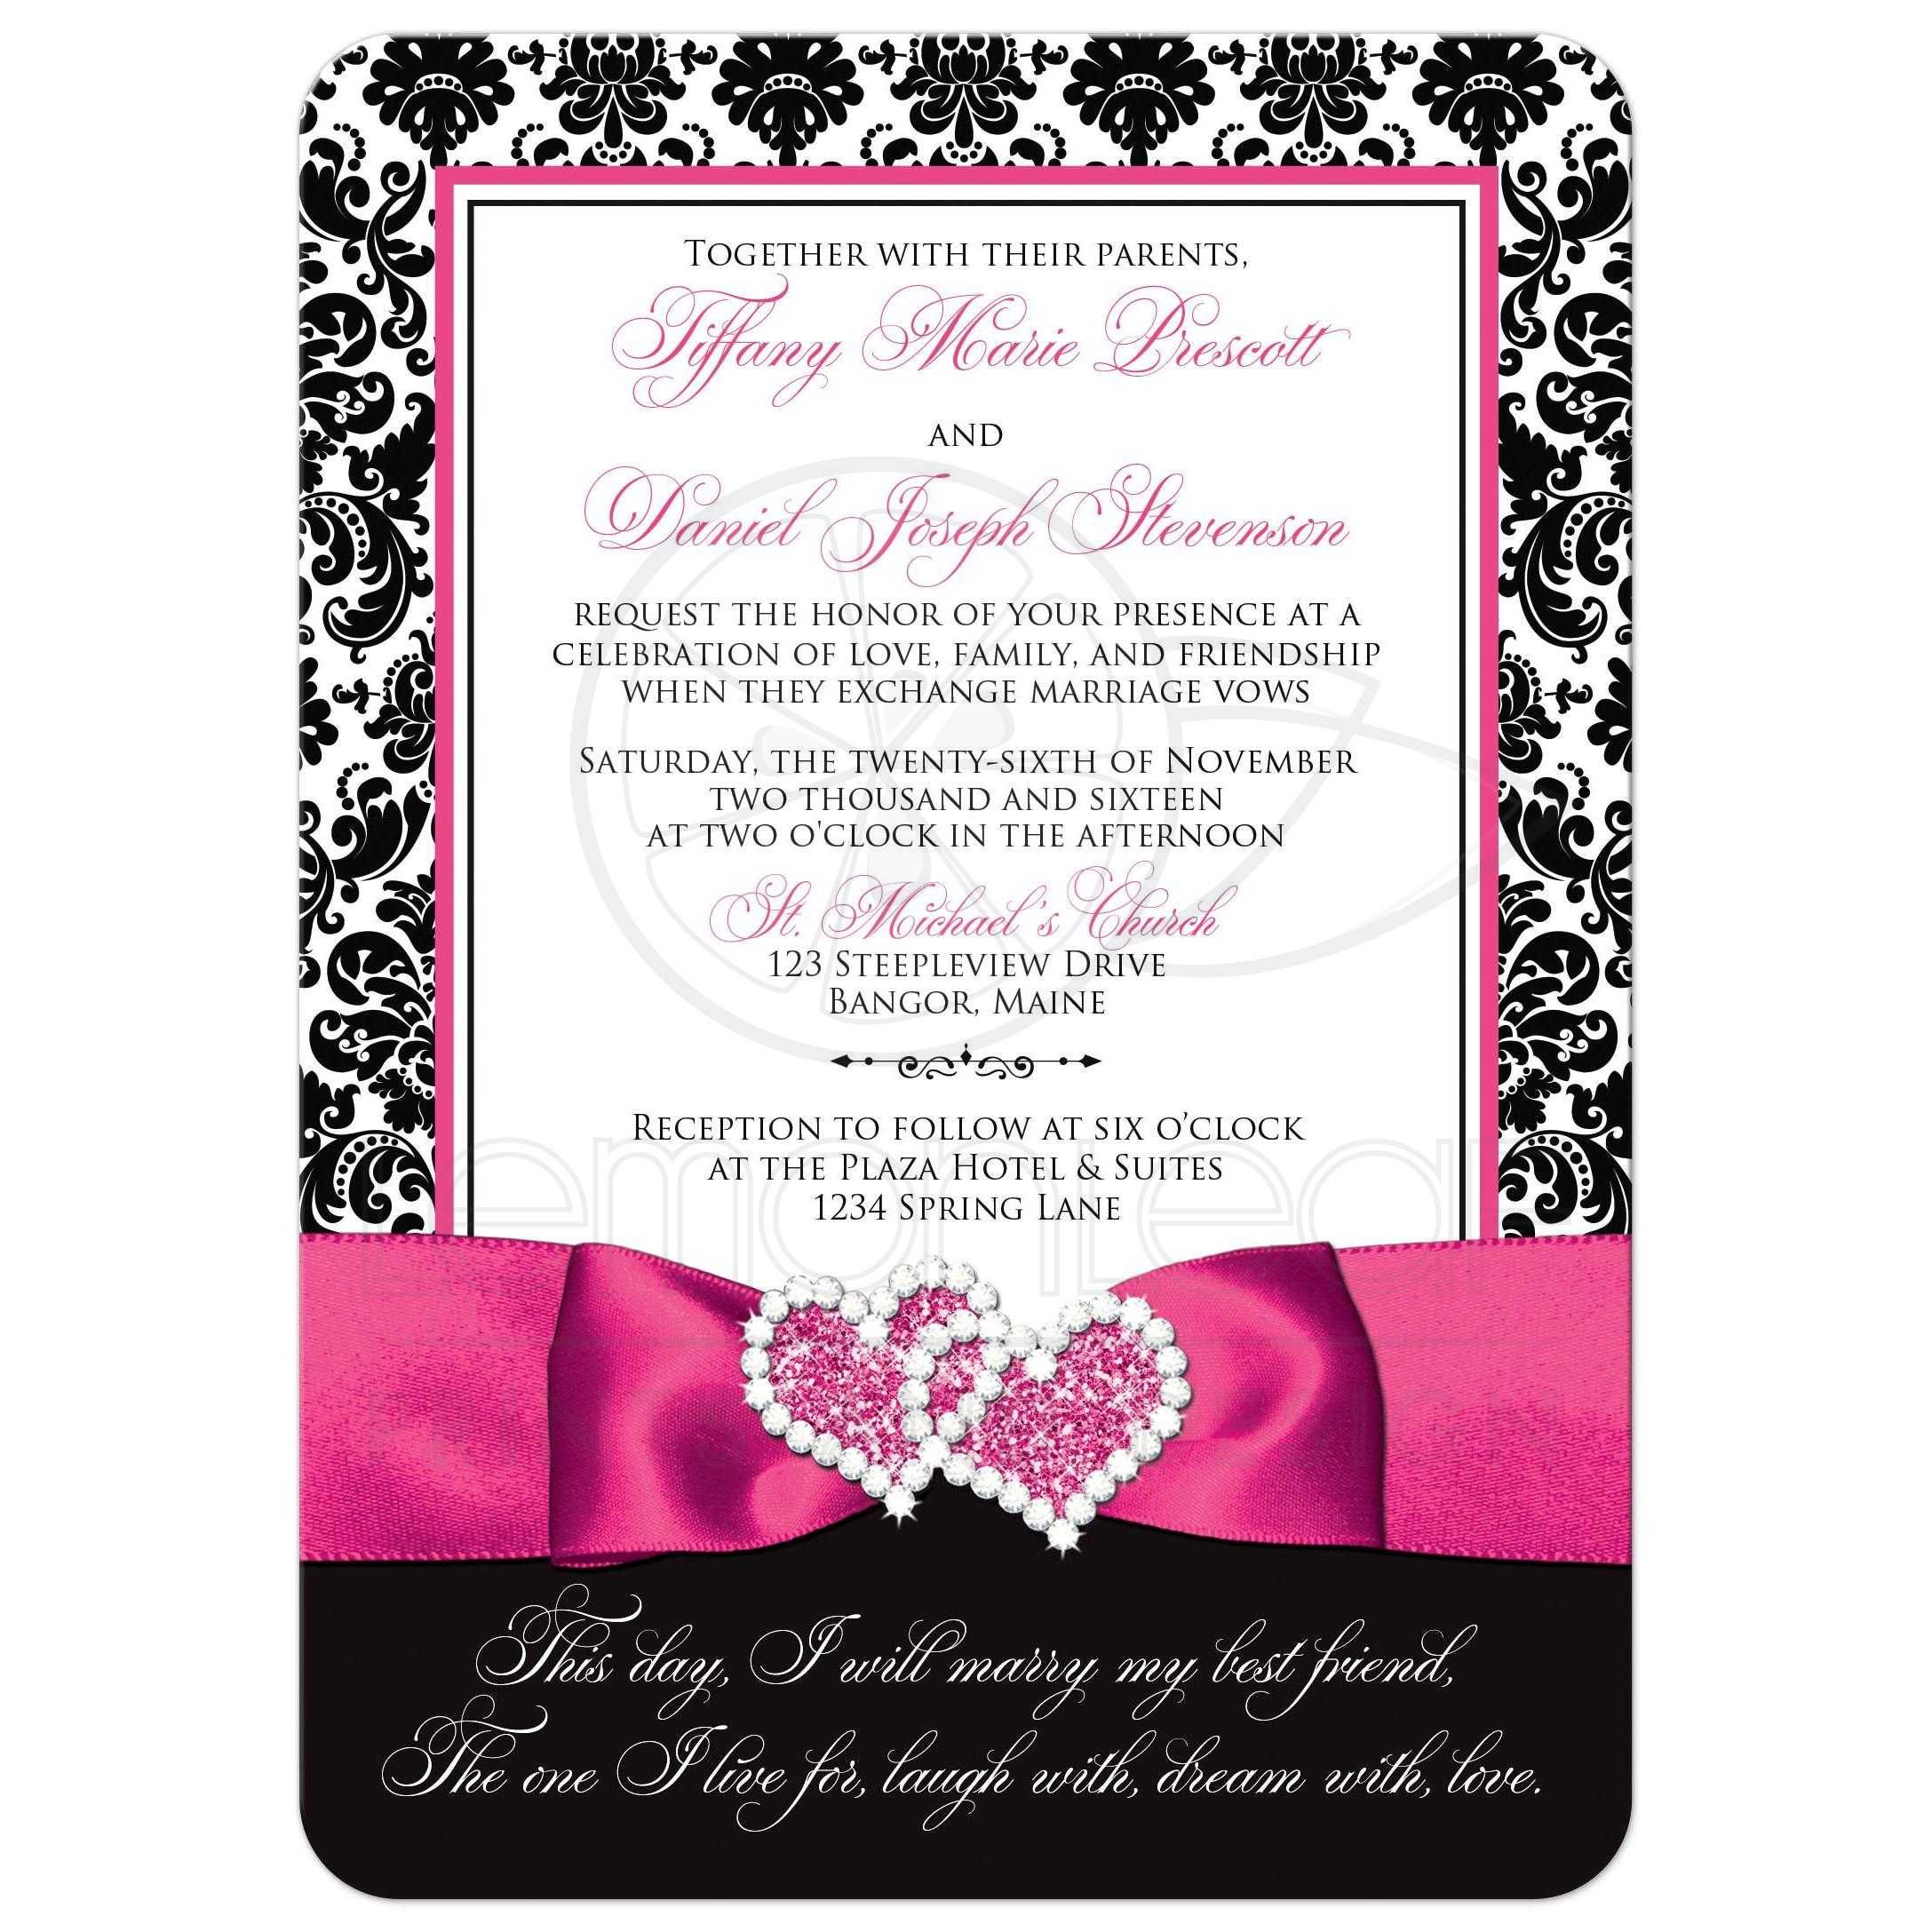 damask wedding invitations Great black and white damask wedding invitations with fuchsia pink ribbon and jewelled joined hearts brooch